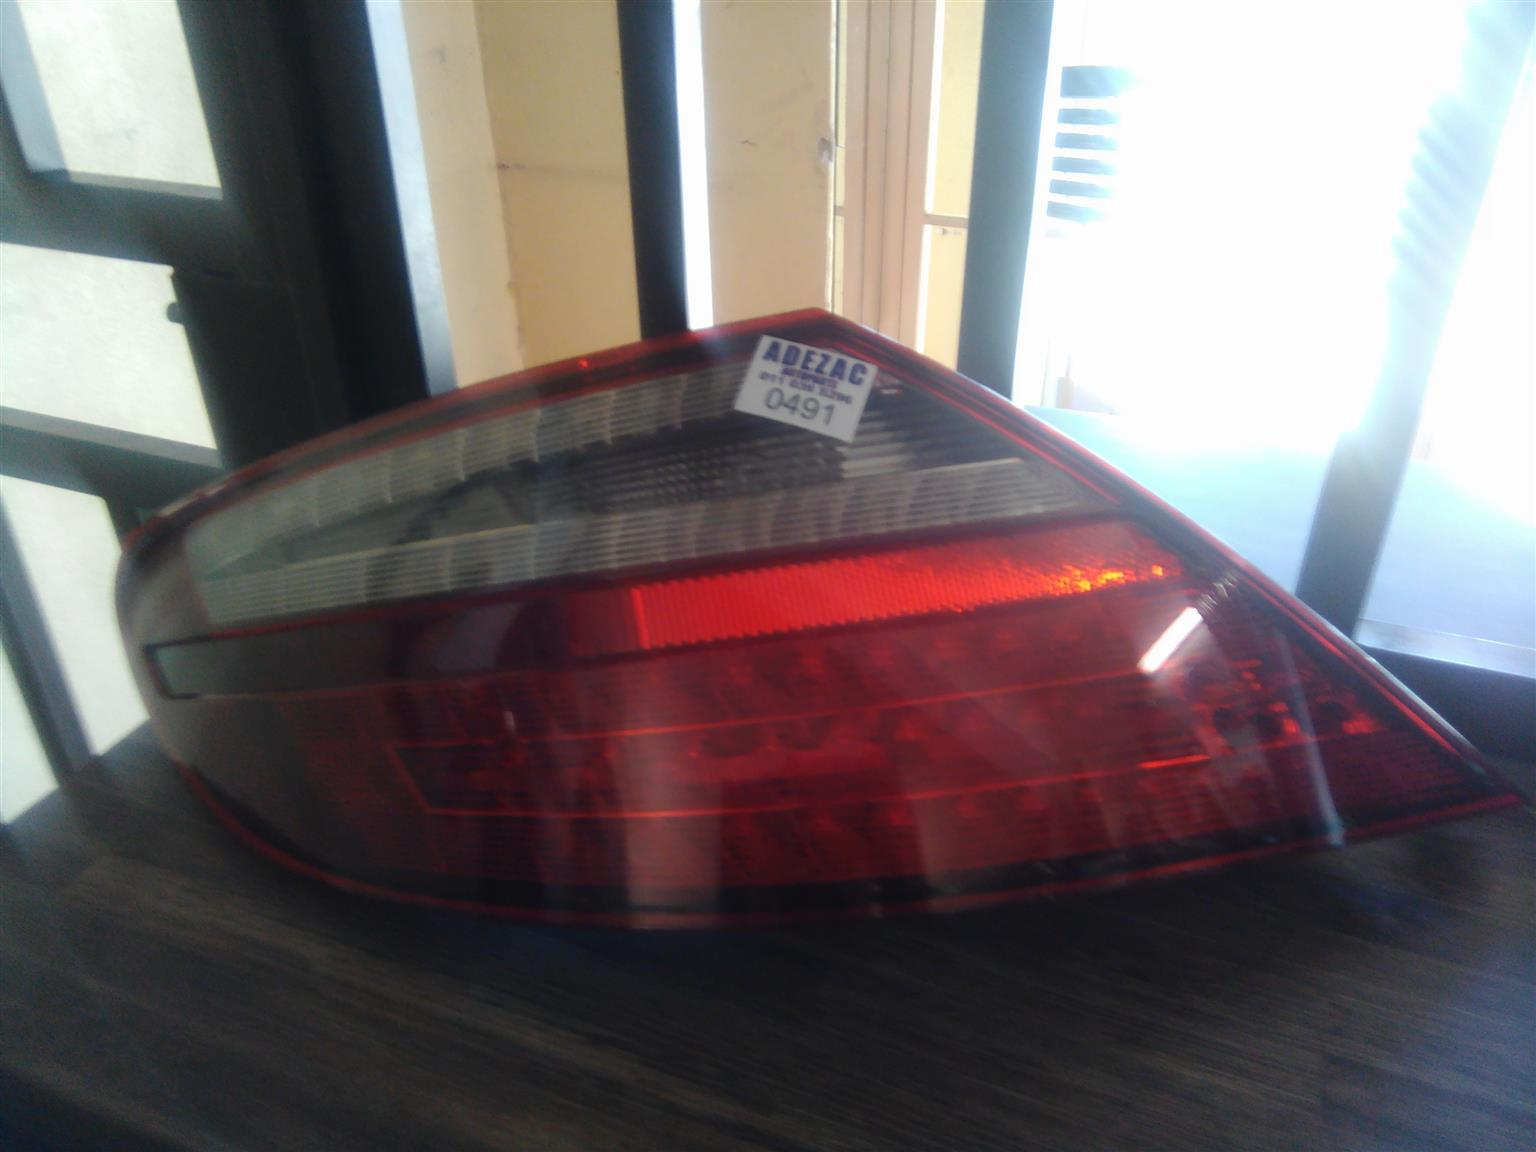 Mercedes Benz W172 tail light available for sale...